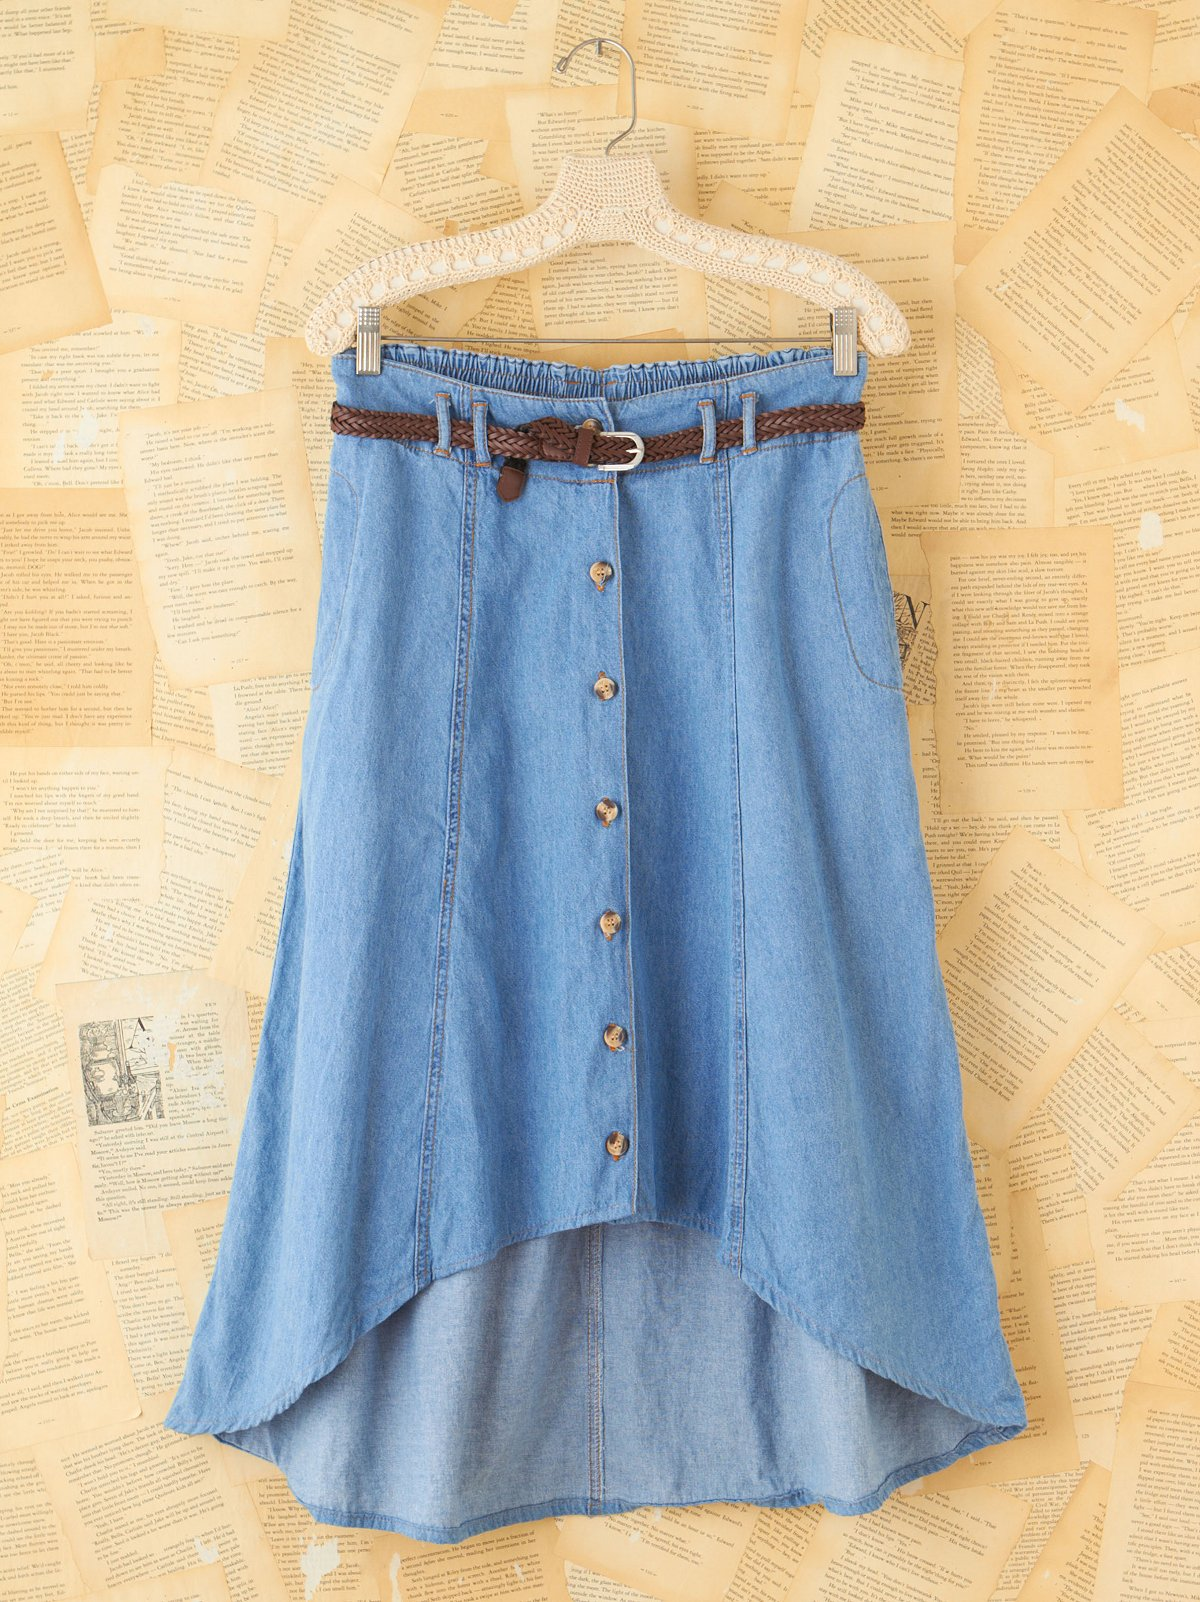 Vintage Bill Blass Chambray High-Low Button Skirt